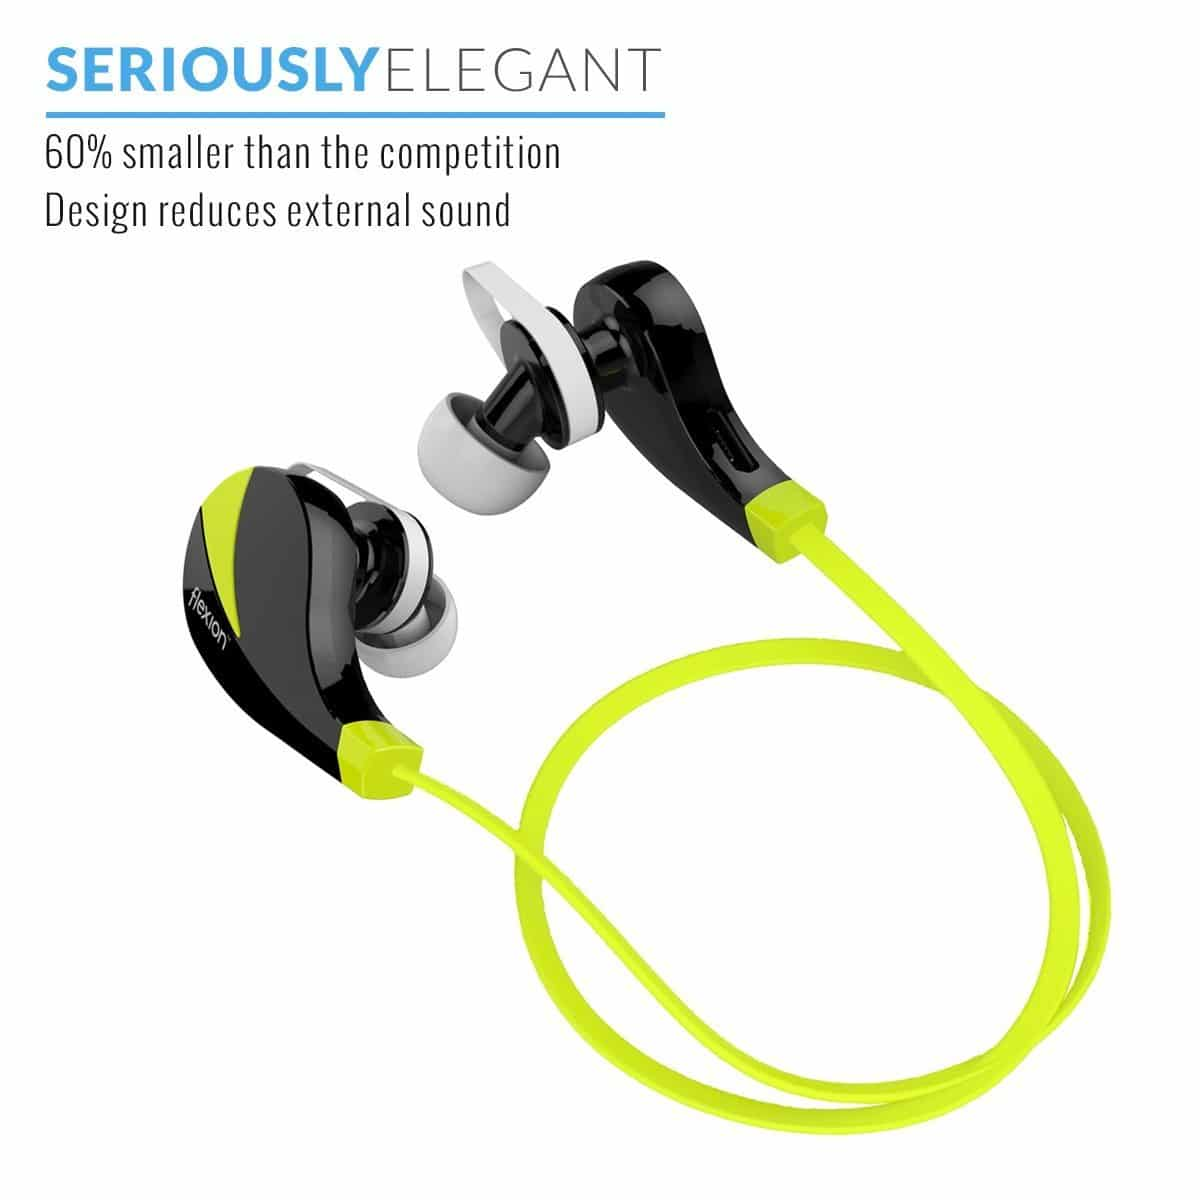 flexion kinetic series wireless bluetooth review headphones compared. Black Bedroom Furniture Sets. Home Design Ideas